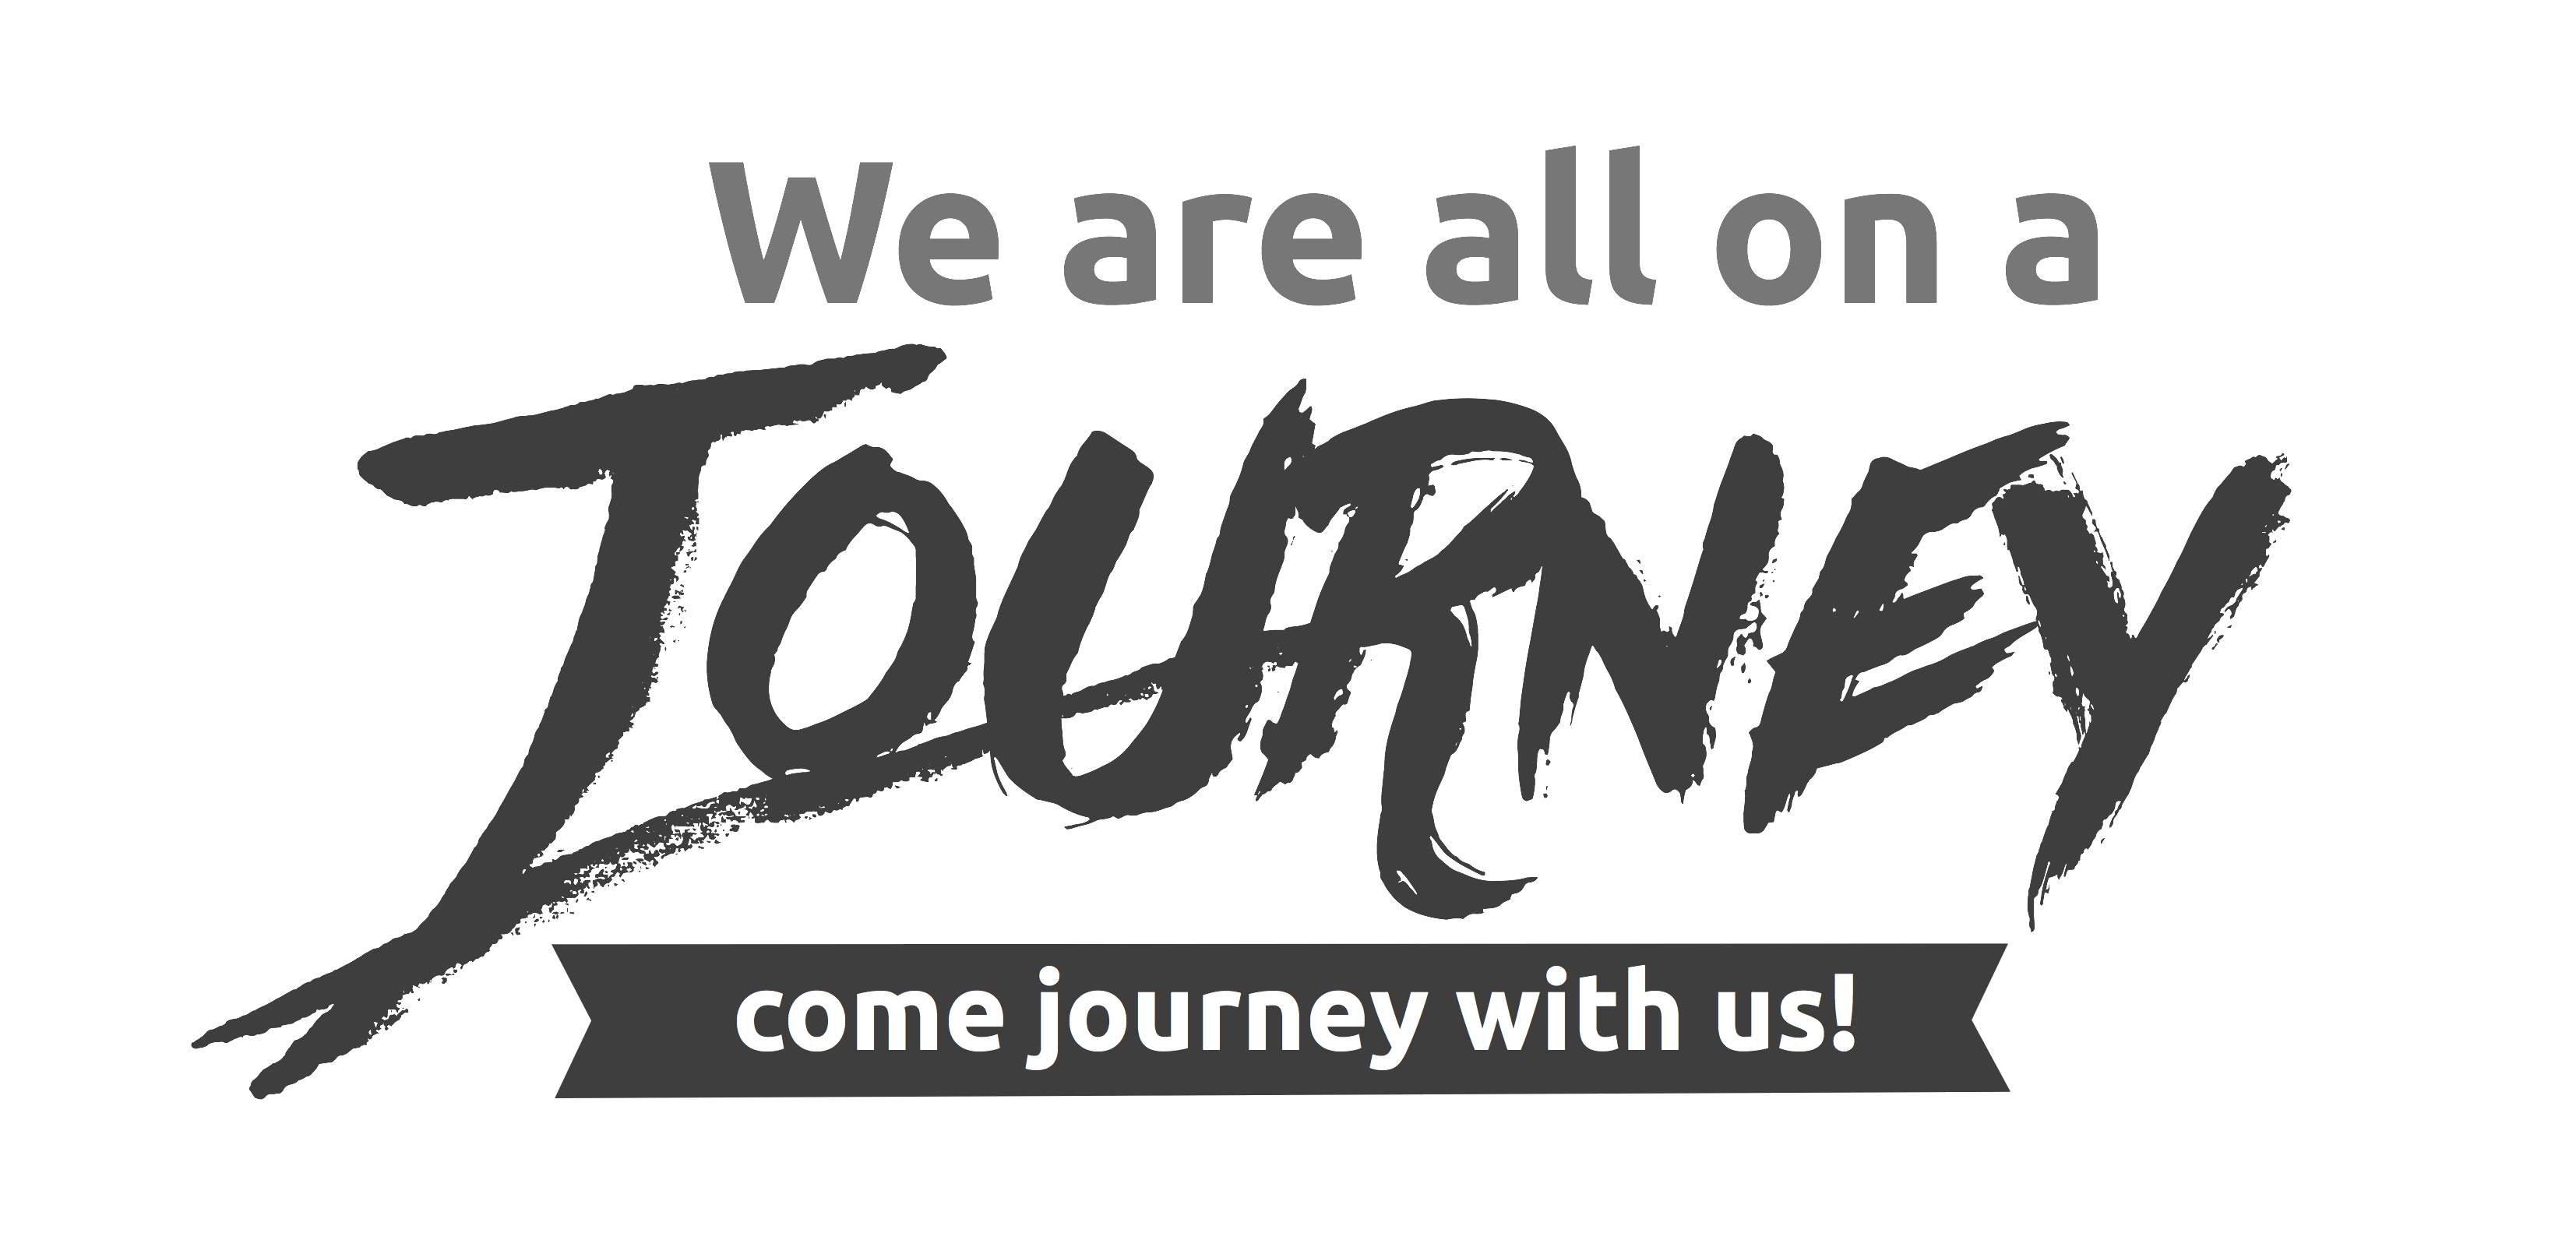 We are all on a journey - come journey with us!